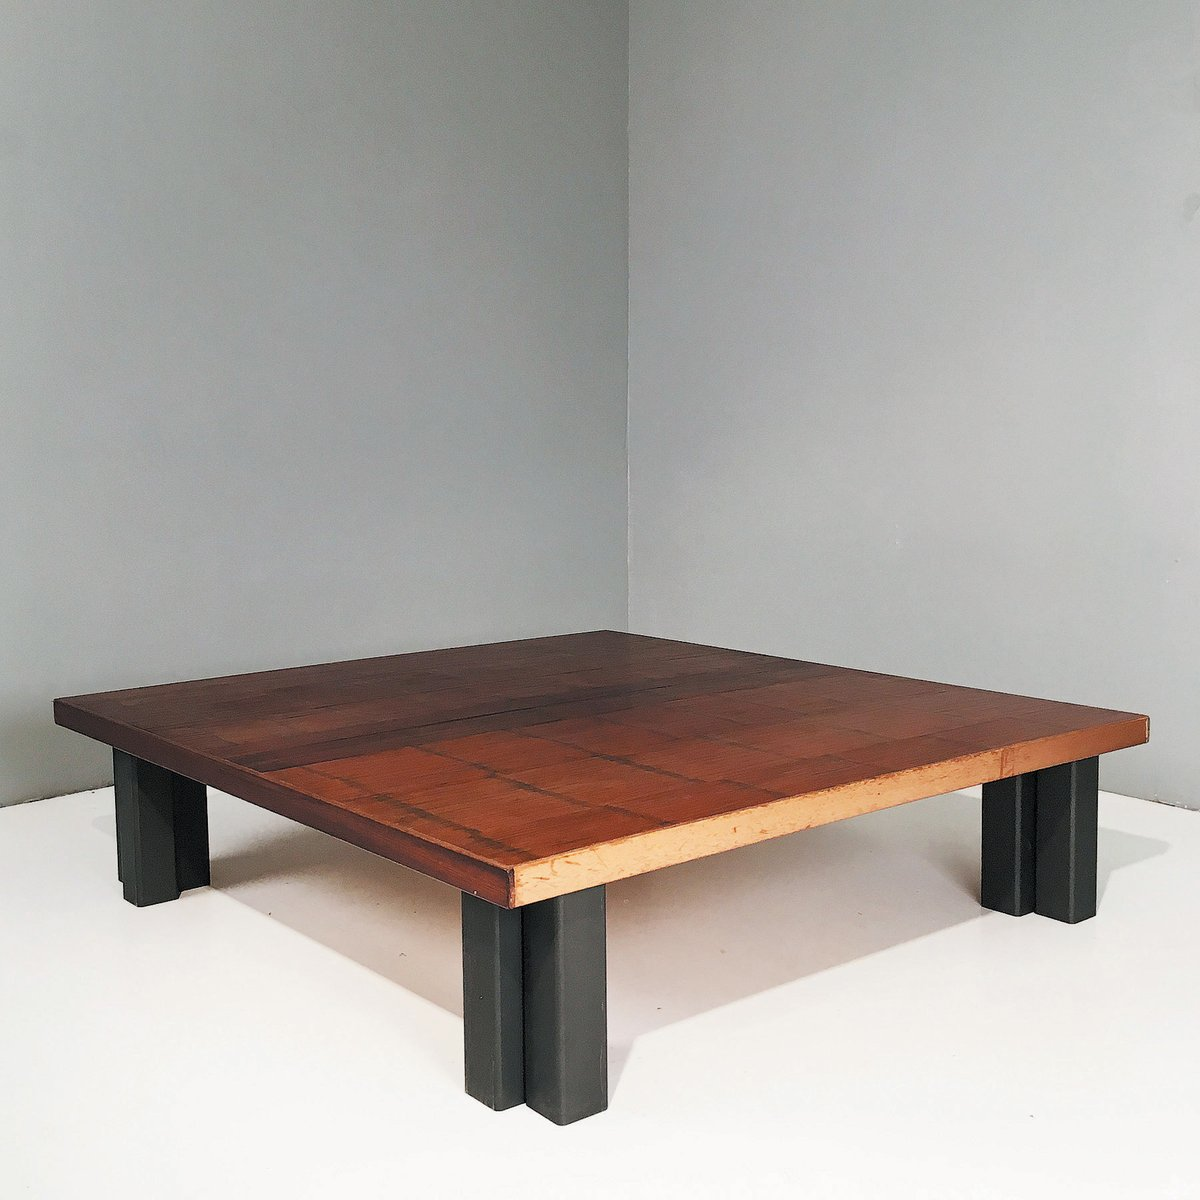 grande table basse 1970s en vente sur pamono. Black Bedroom Furniture Sets. Home Design Ideas